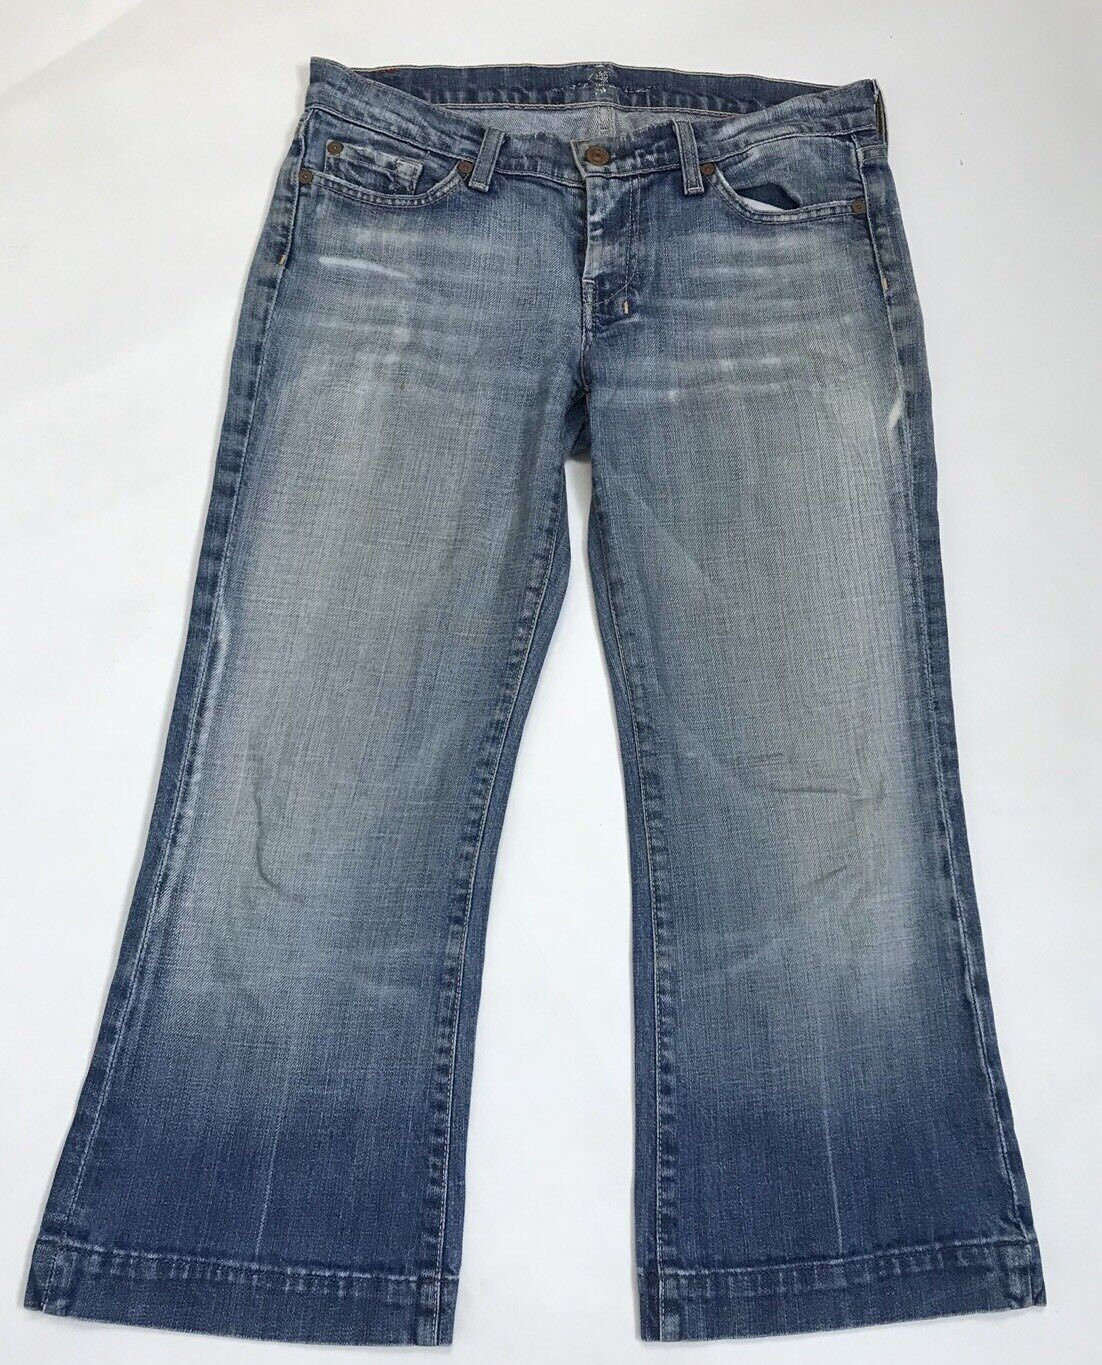 7 For All Mankind 28 Women's Jeans DOJO Wide Leg Cropped Light Wash Distressed